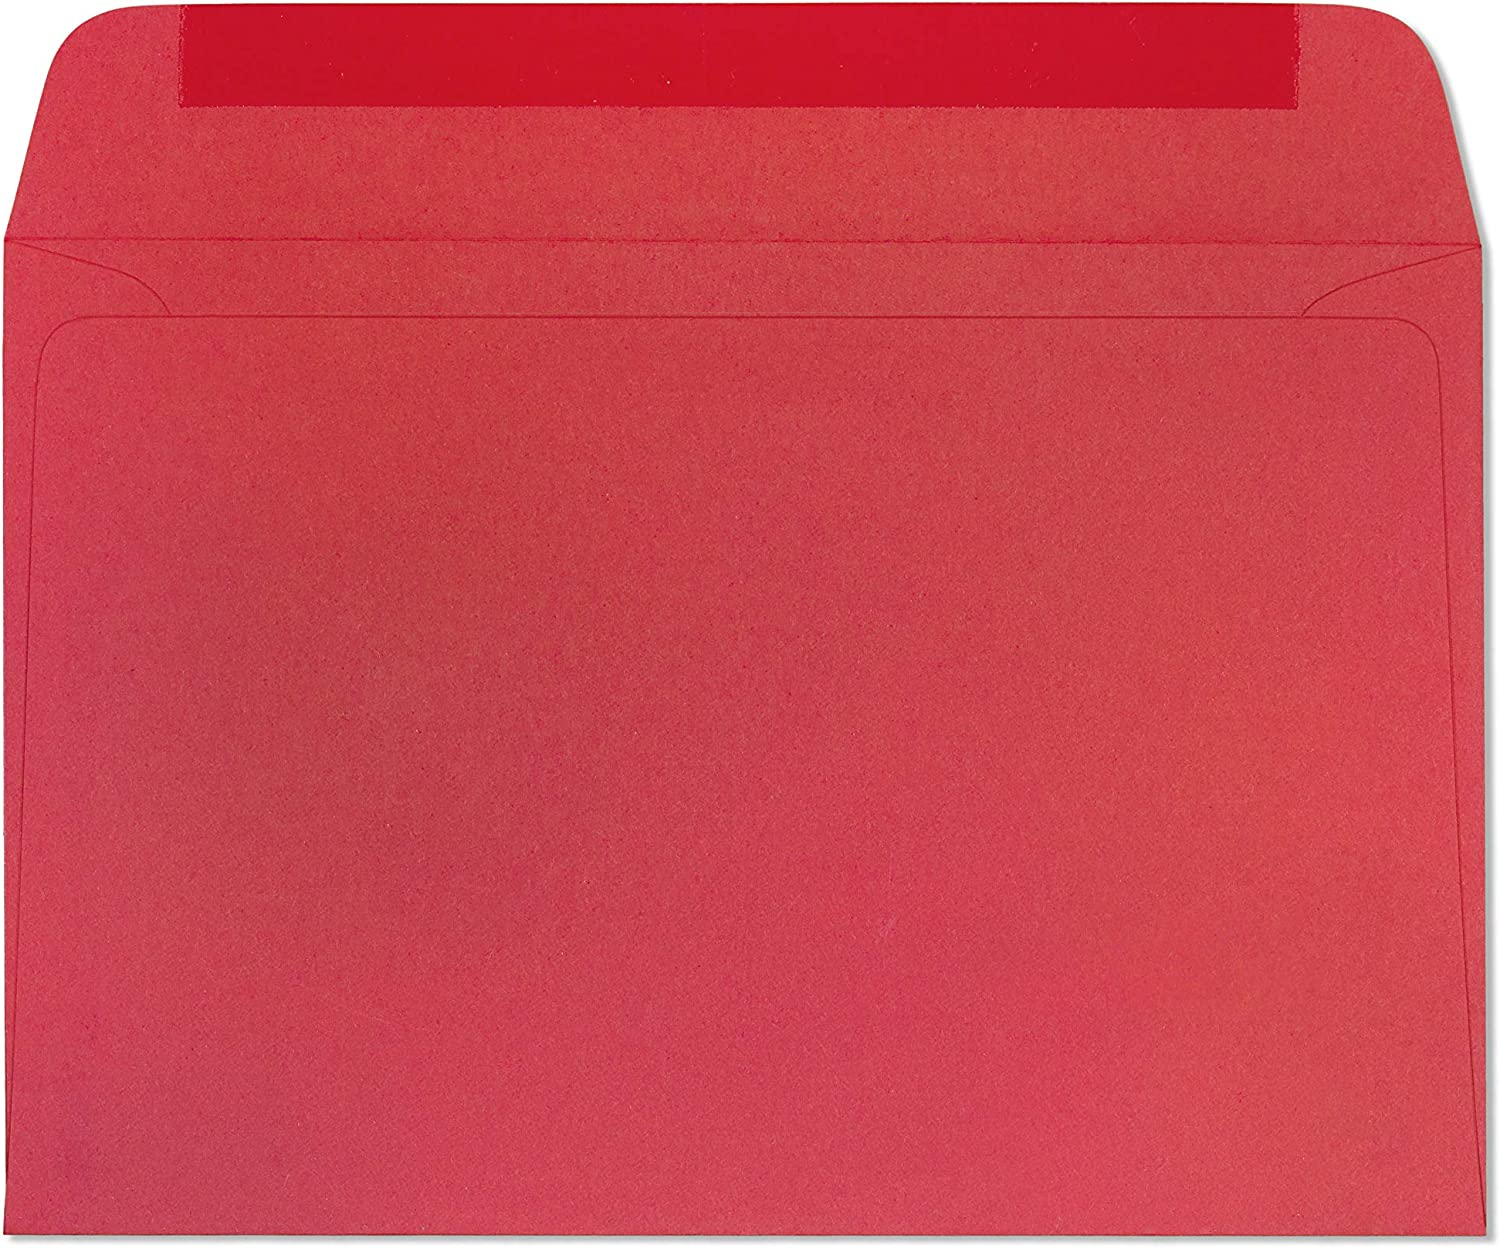 Envelopes 6x9 Holiday Red Bright Color - Greeting Cards Invitation Envelope 24lb 6 x 9 Inch Heavyweight Paper Envelopes for Home, Office, Business, Legal or School - 25 Count